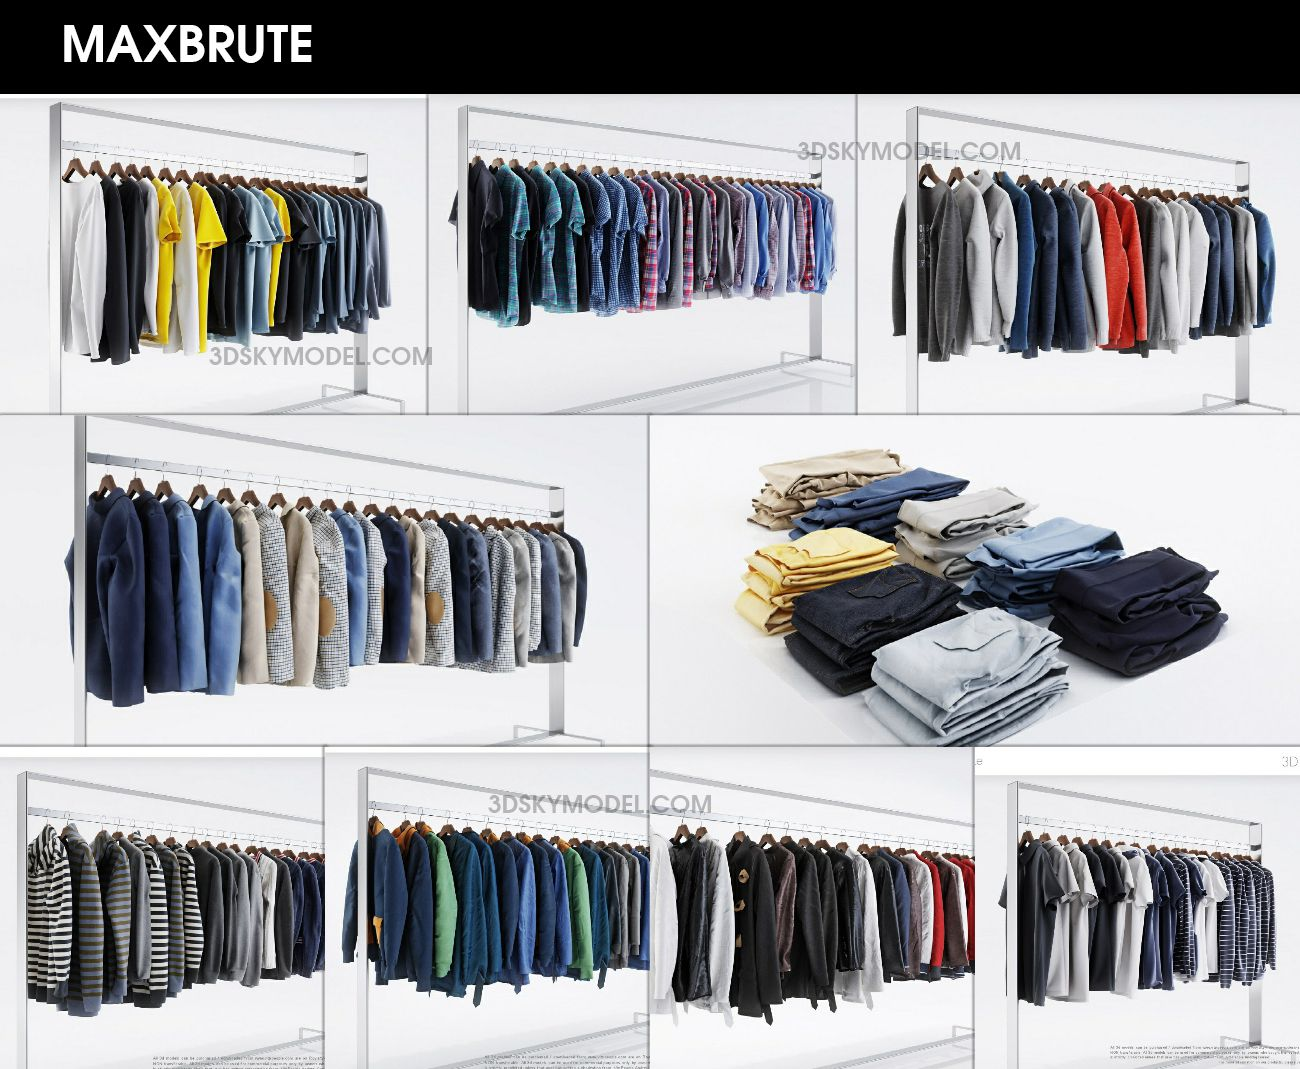 CLOTHES 2- Quần áo 3dsmax - Maxbrute Furniture Visualization